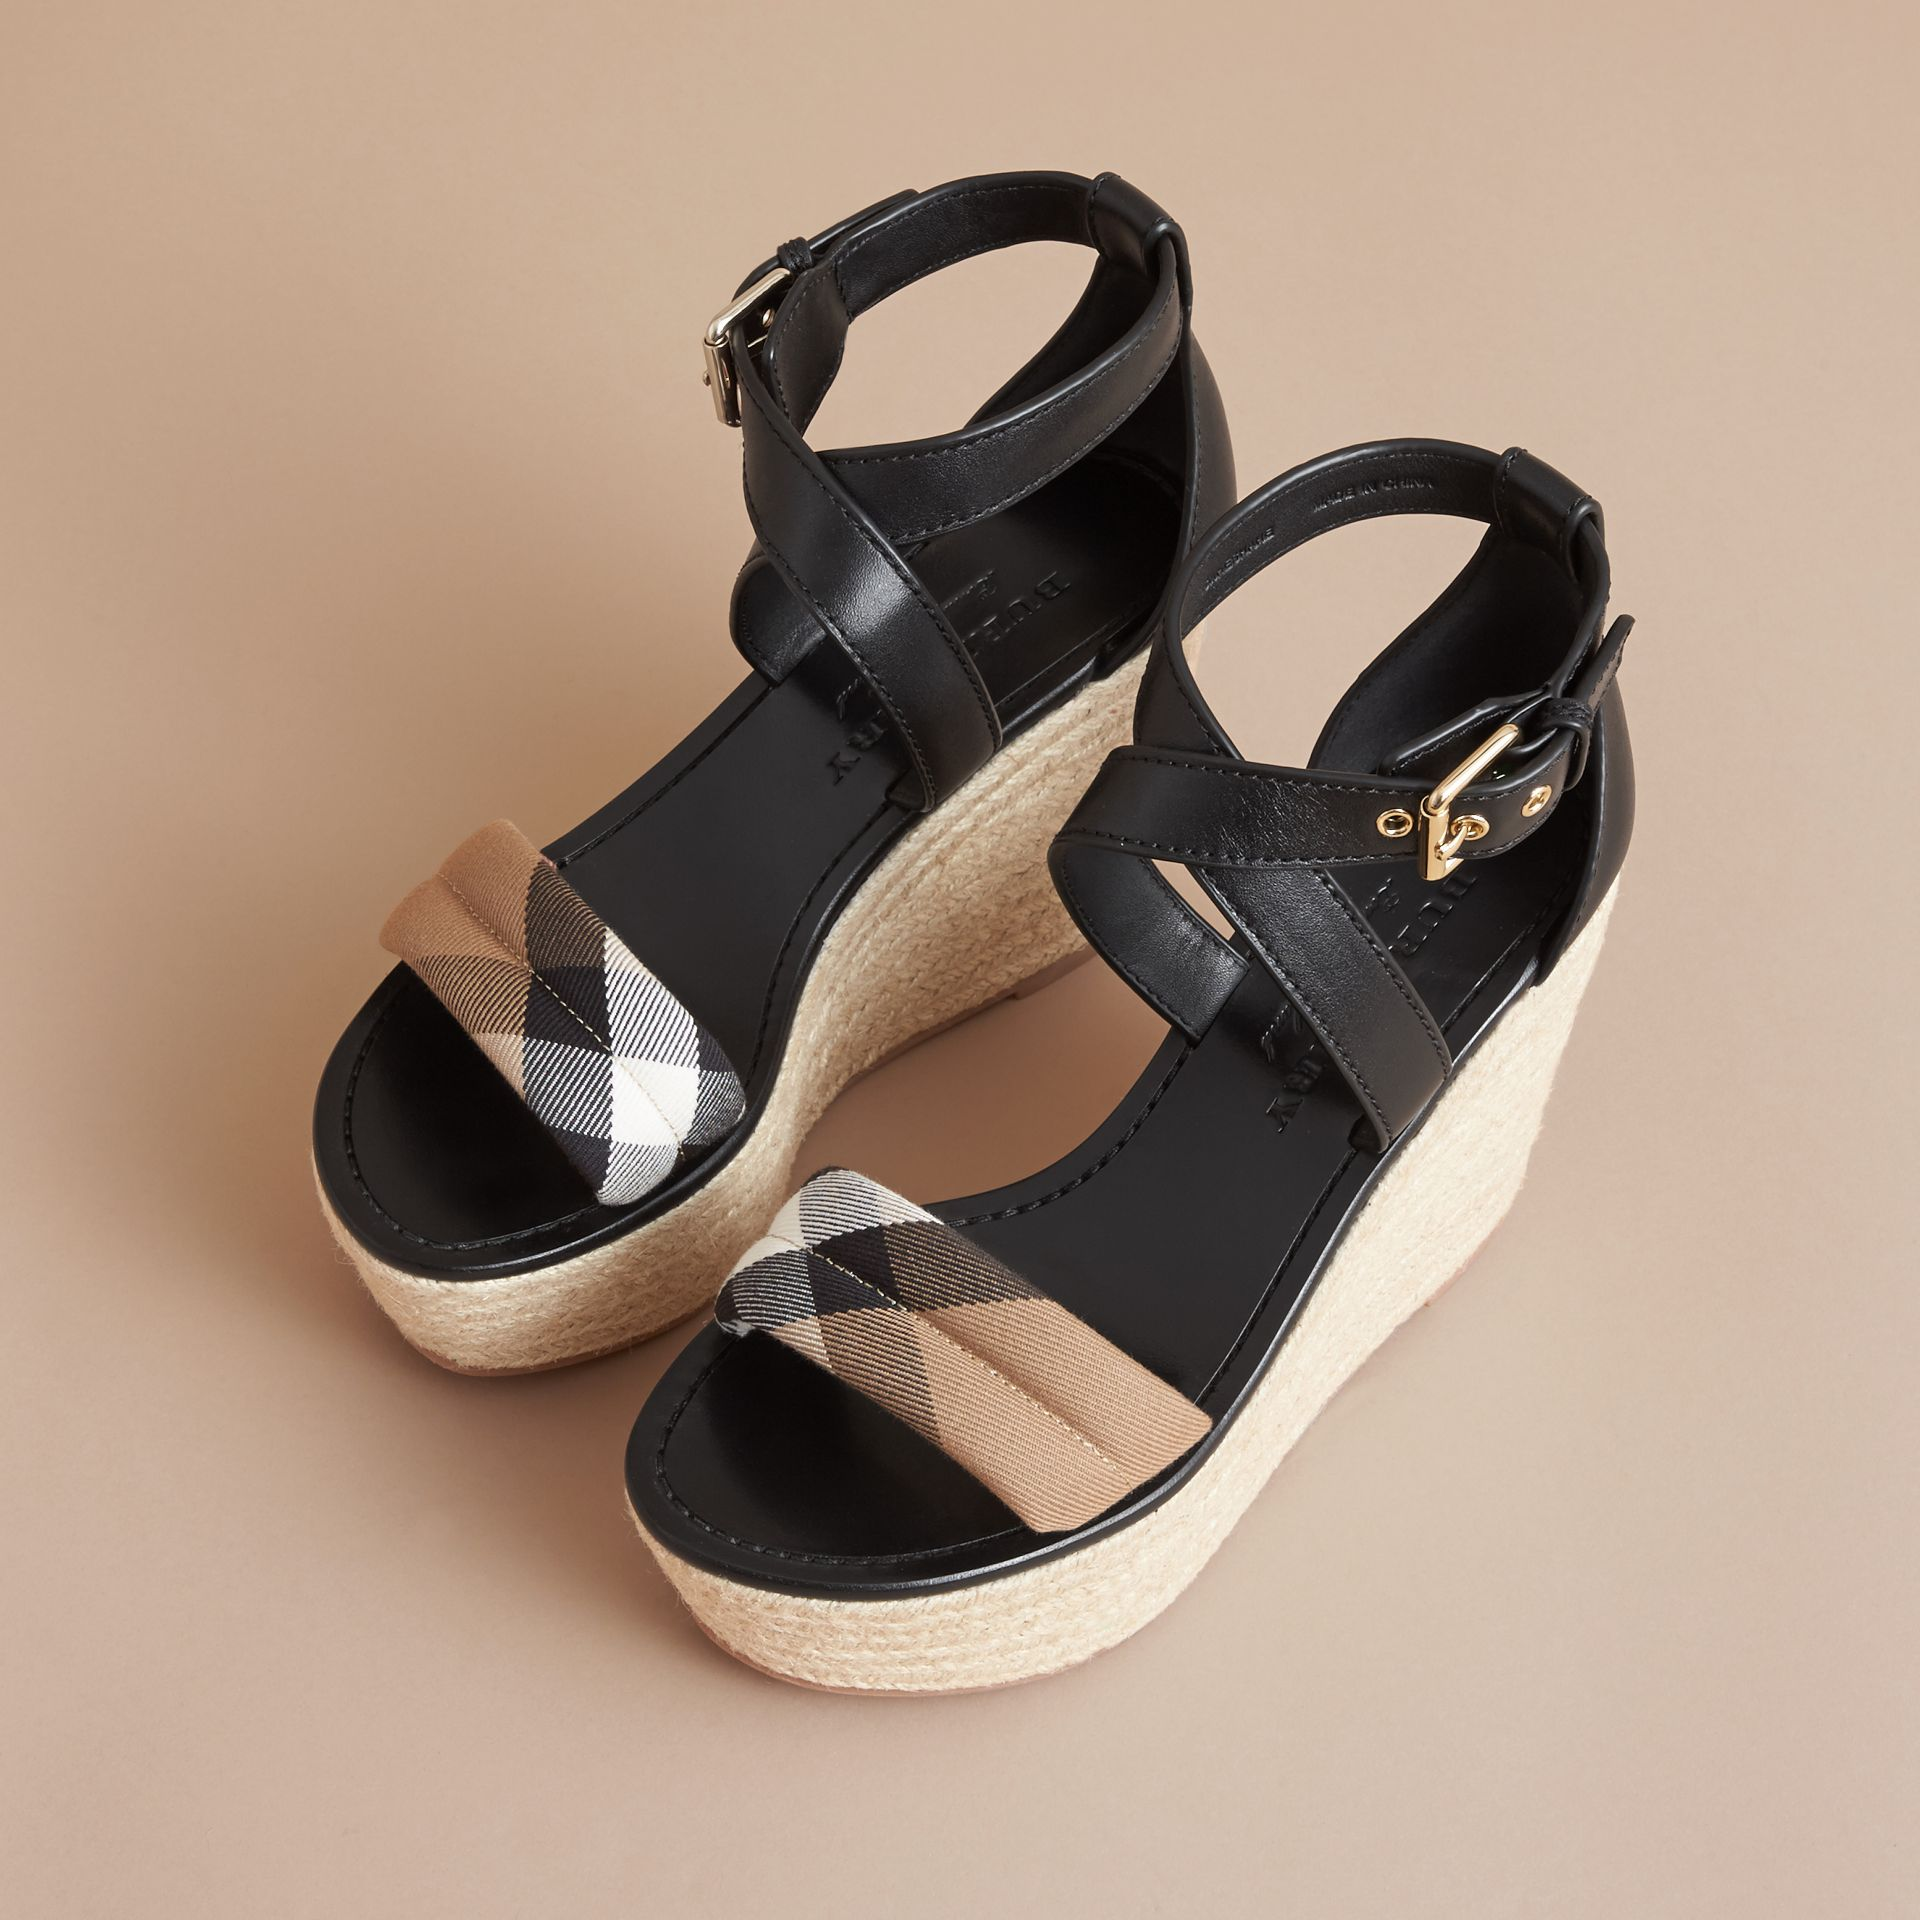 Leather and House Check Platform Espadrille Wedge Sandals in Black - Women | Burberry - gallery image 4